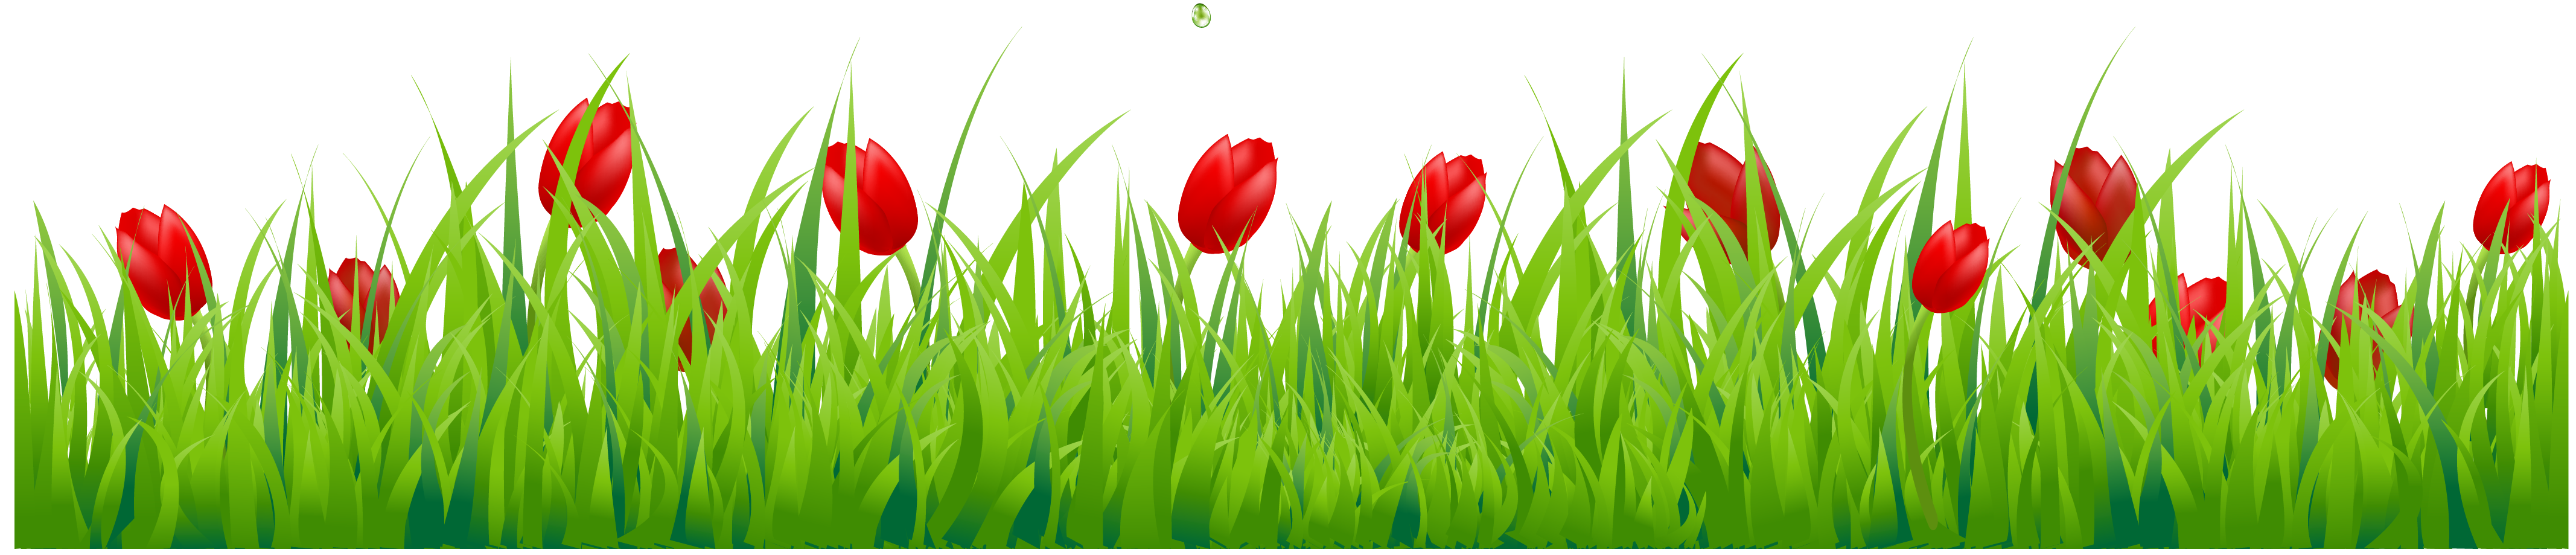 Grass with red tulips png clipart spring borders for Grass flower